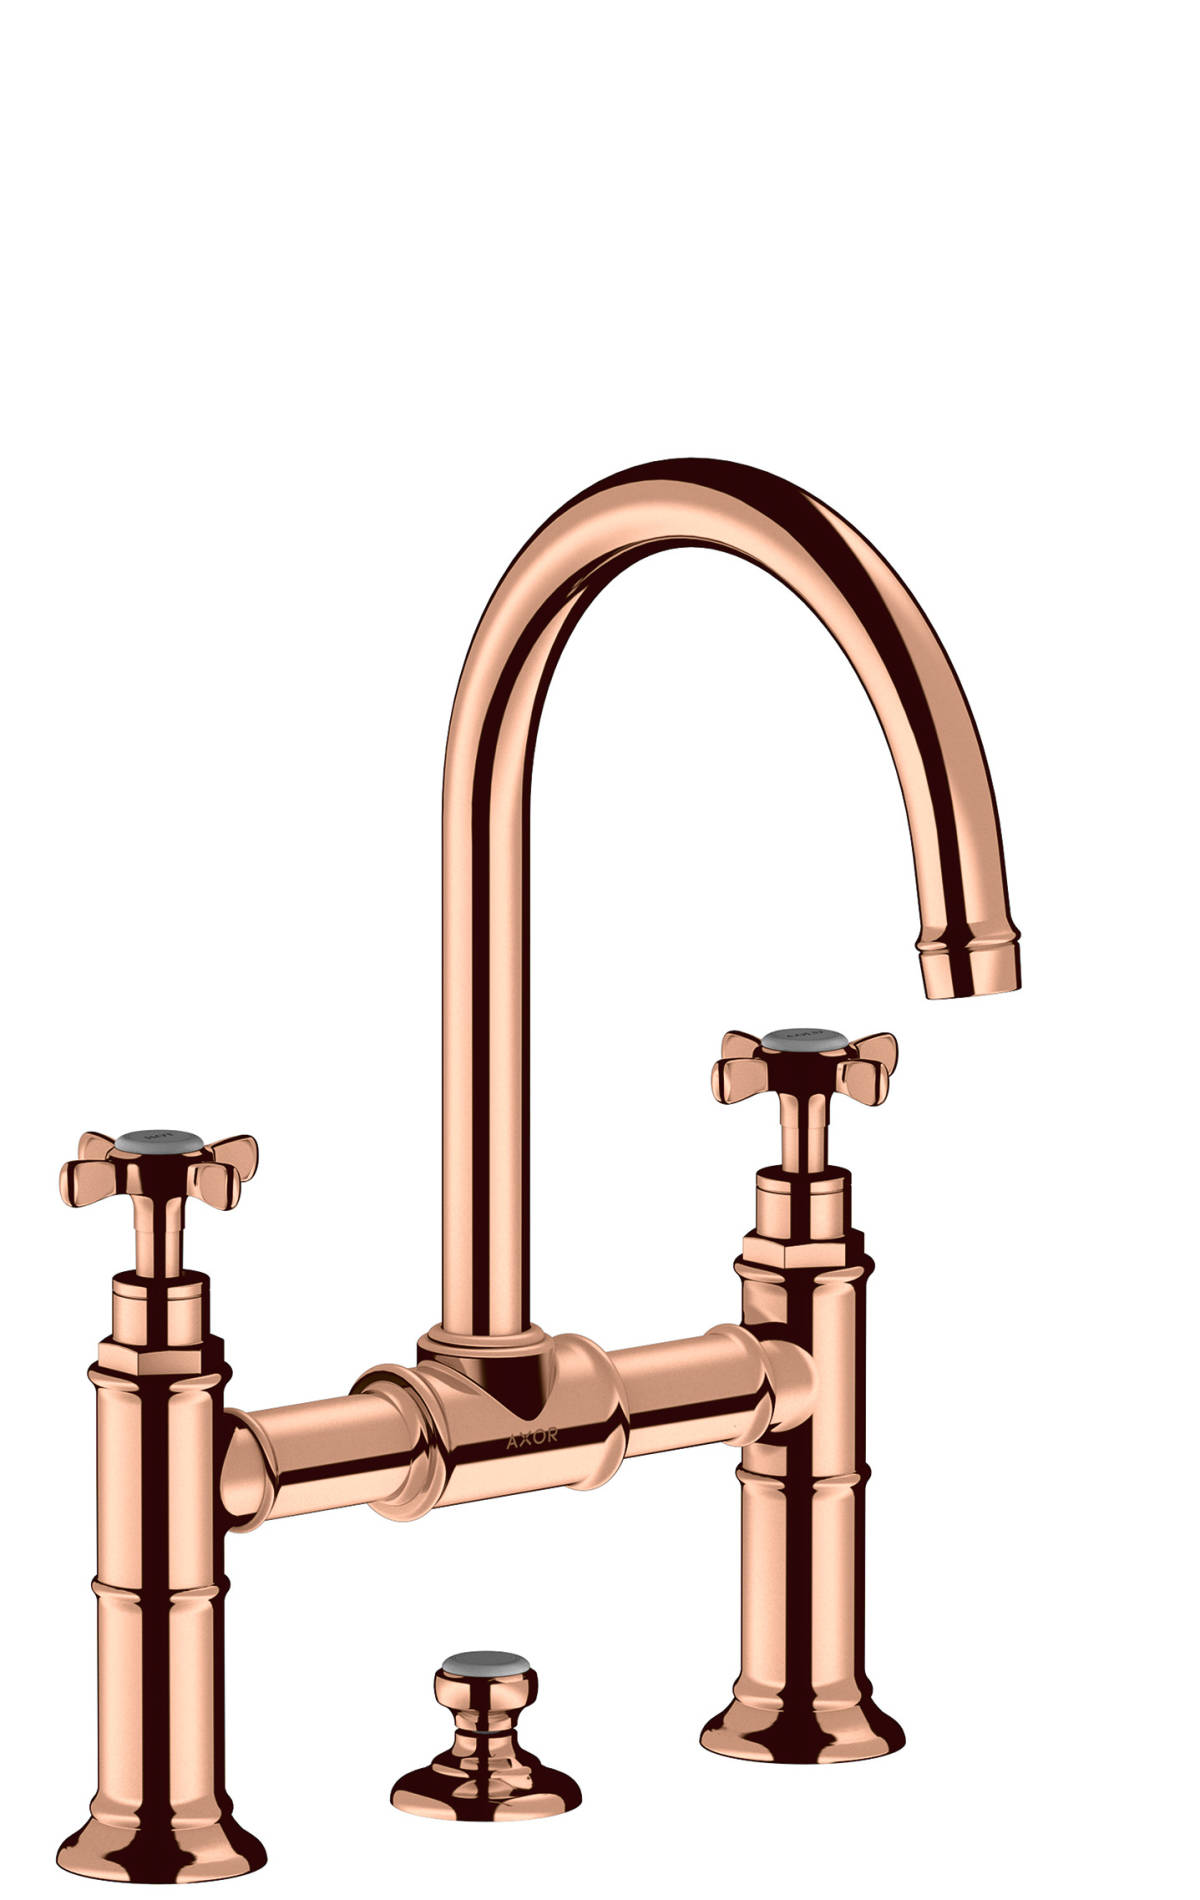 2-handle basin mixer 220 with cross handles and pop-up waste set, Polished Red Gold, 16510300